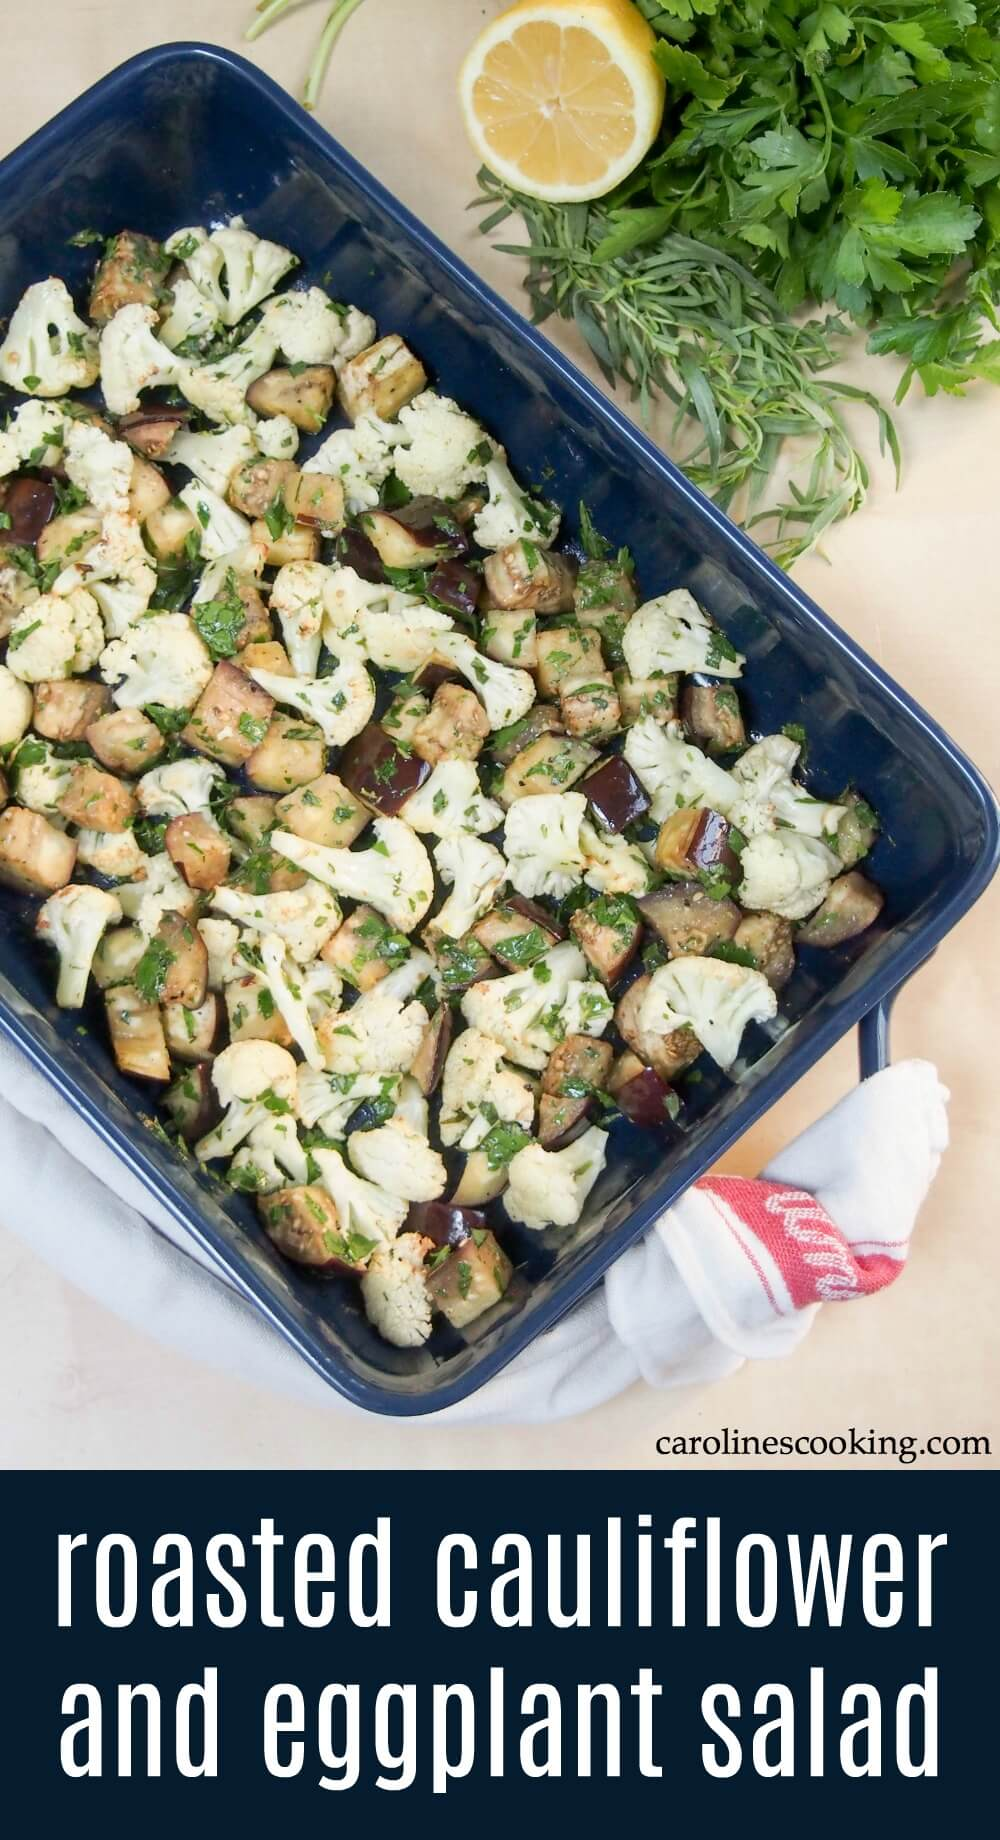 This roasted cauliflower and eggplant salad makes a versatile accompaniment to many meals. Great roasted veg flavor with a fresh herby, citrus dressing. A tasty, healthy change from the norm. #roastedvegetables #sidedish #eggplant #cauliflower